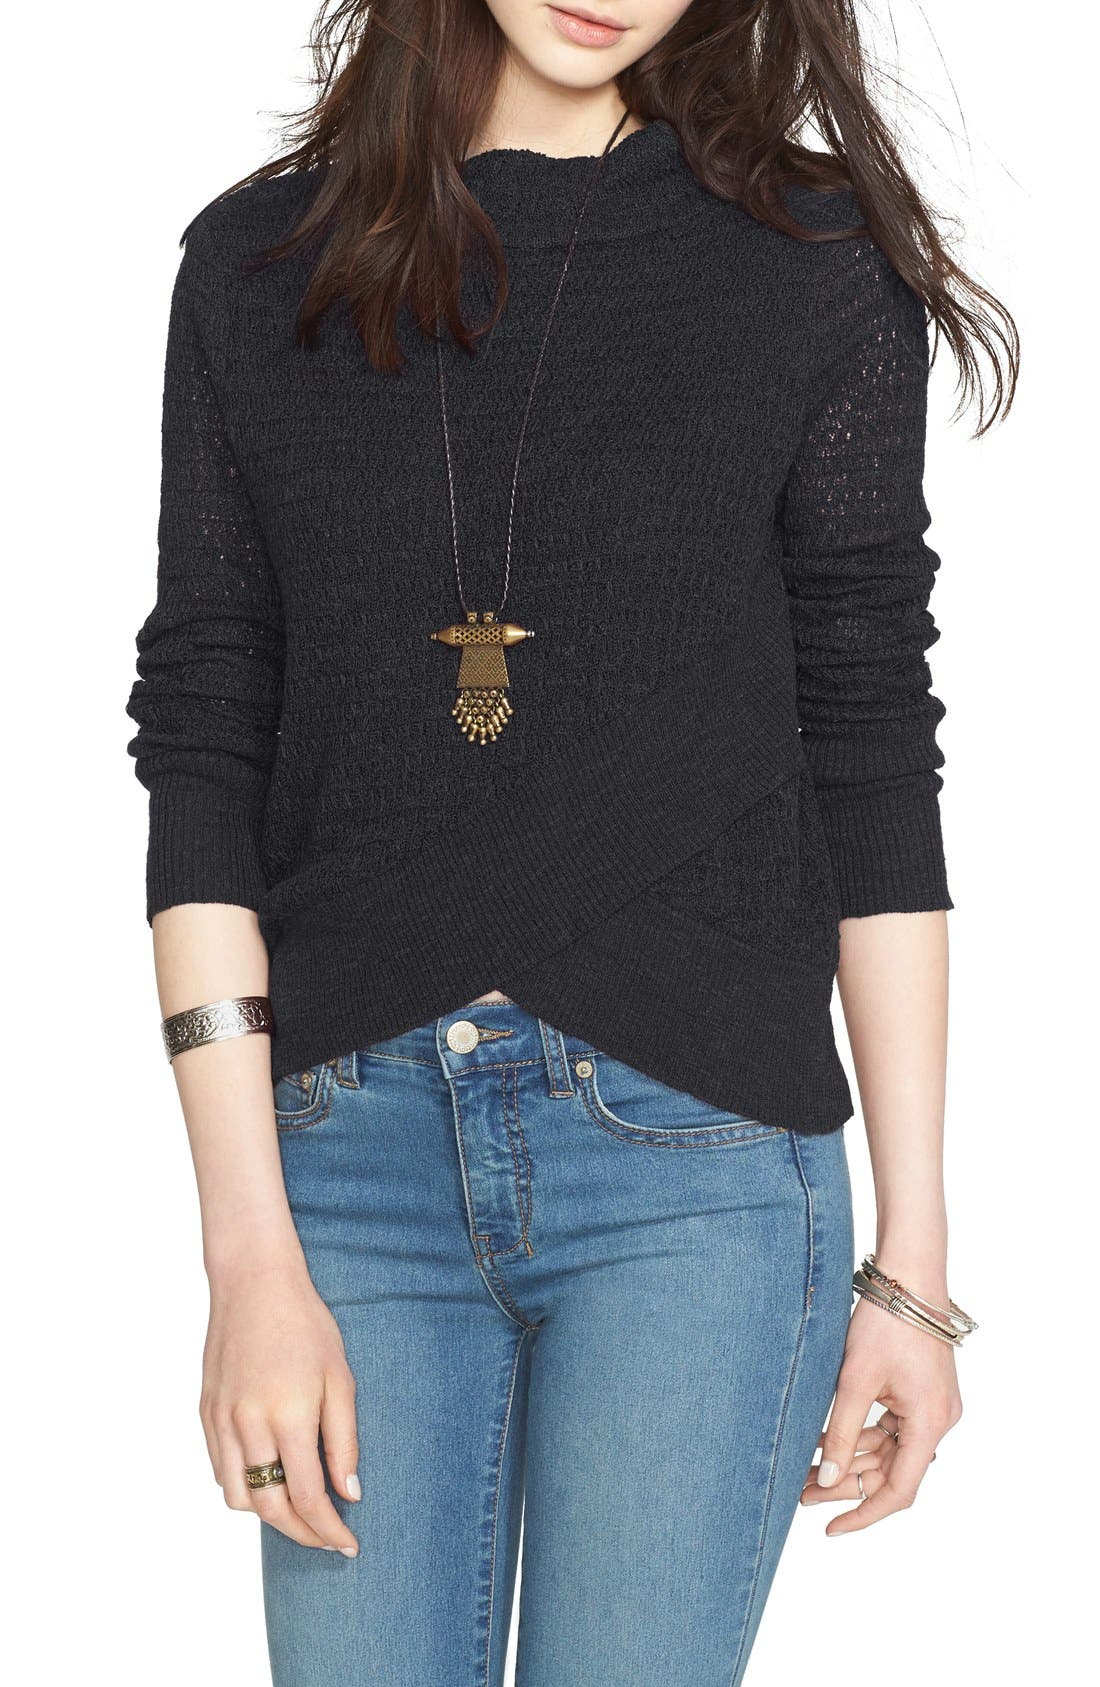 FREE PEOPLE Crossover Sweater, Main, color, 001